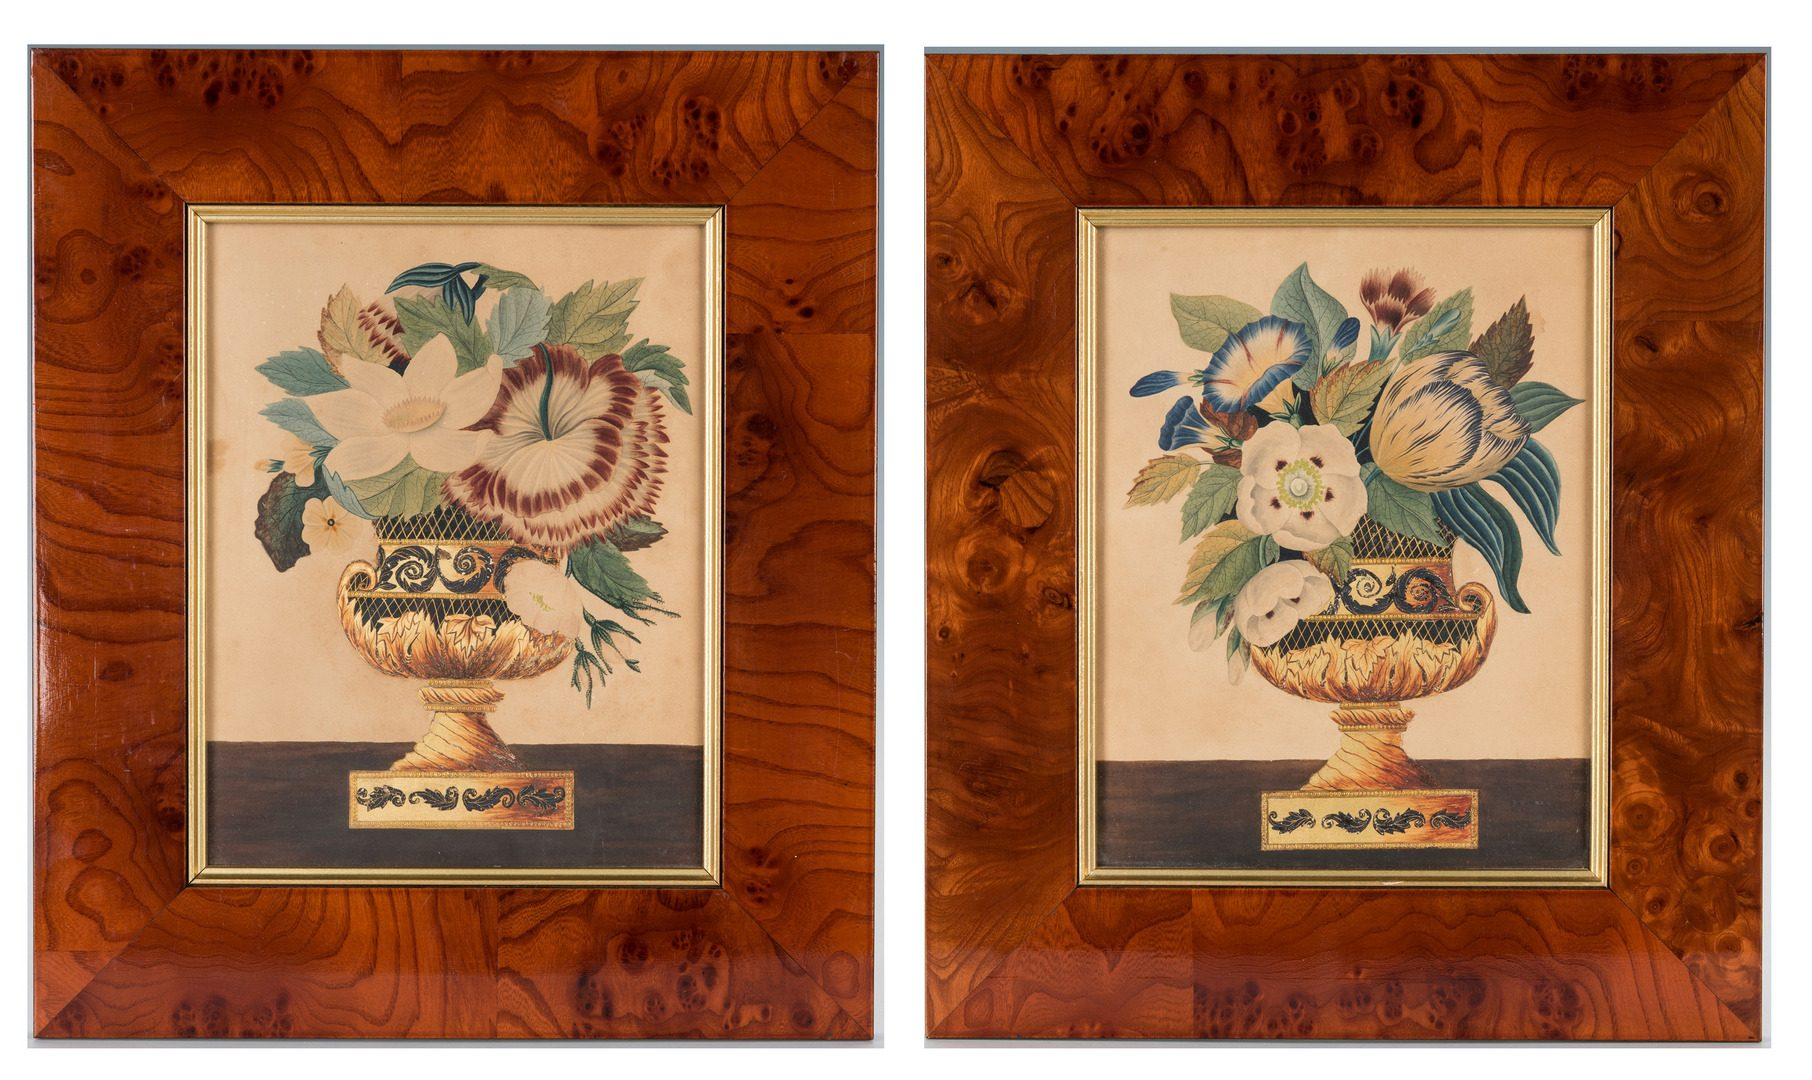 Lot 406: Pair Gilt-Embellished Watercolor Theorems, c. 1850